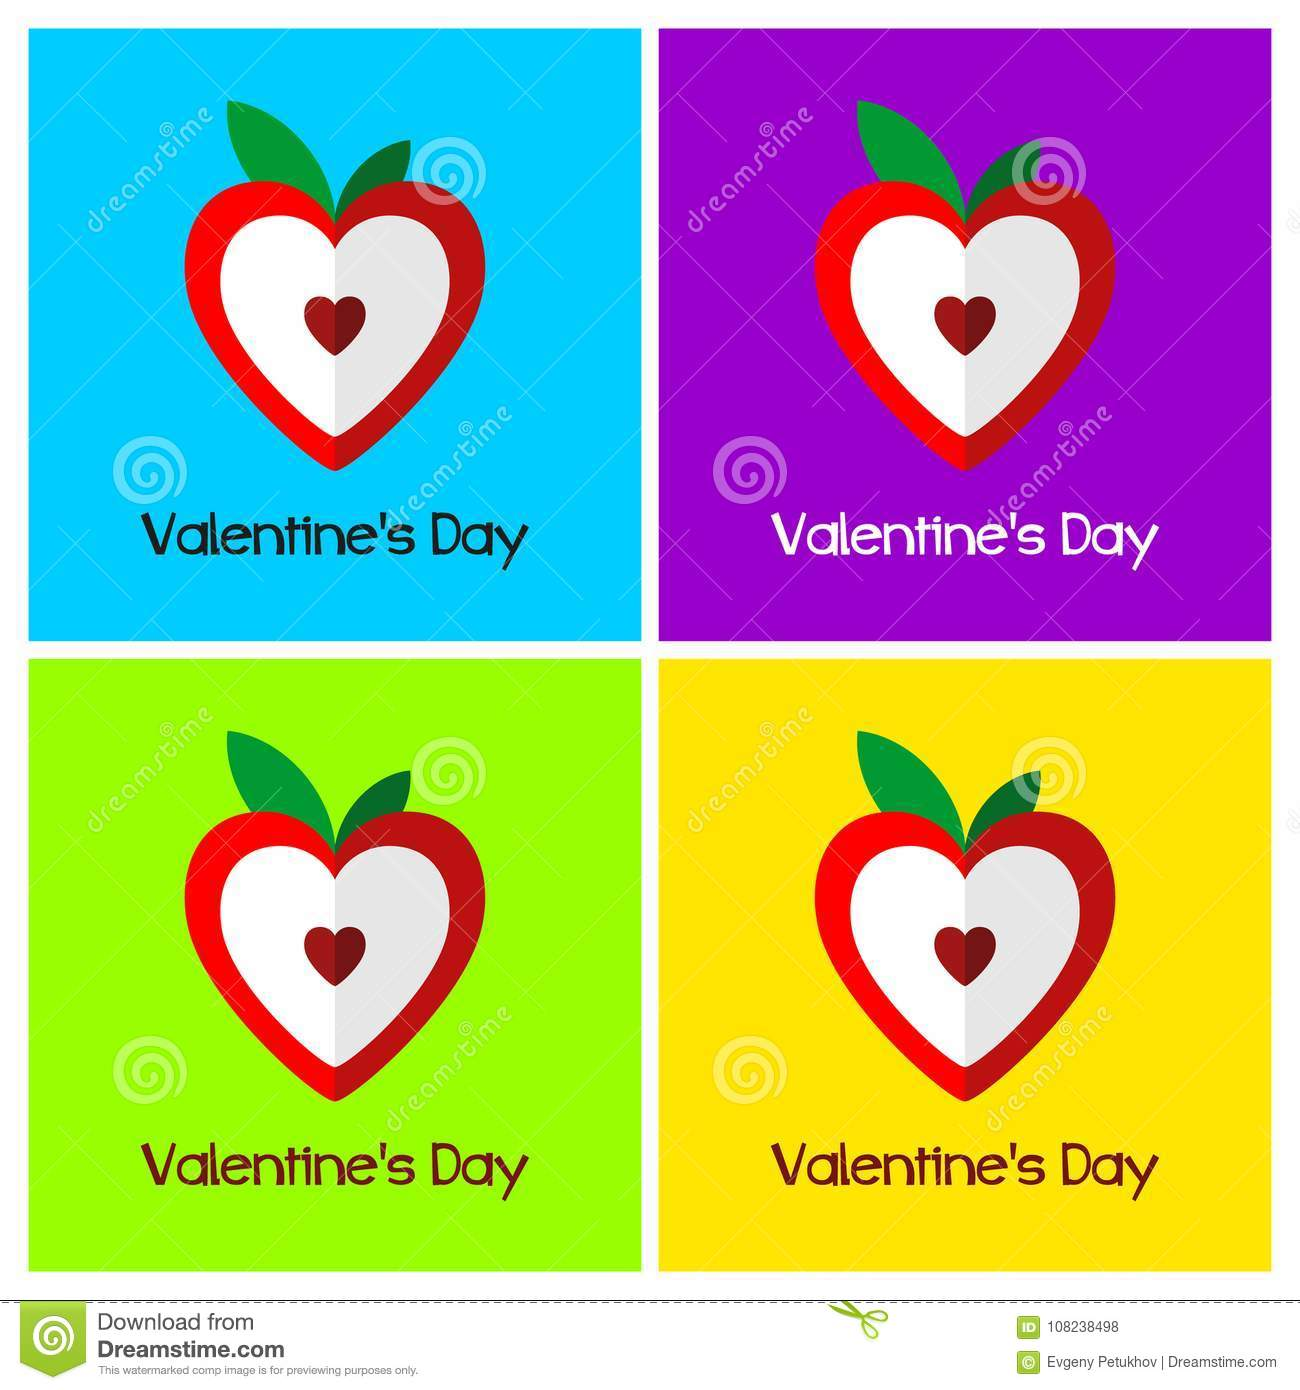 A Set Of Greeting Cards For Valentines Day Heart Stylized In A